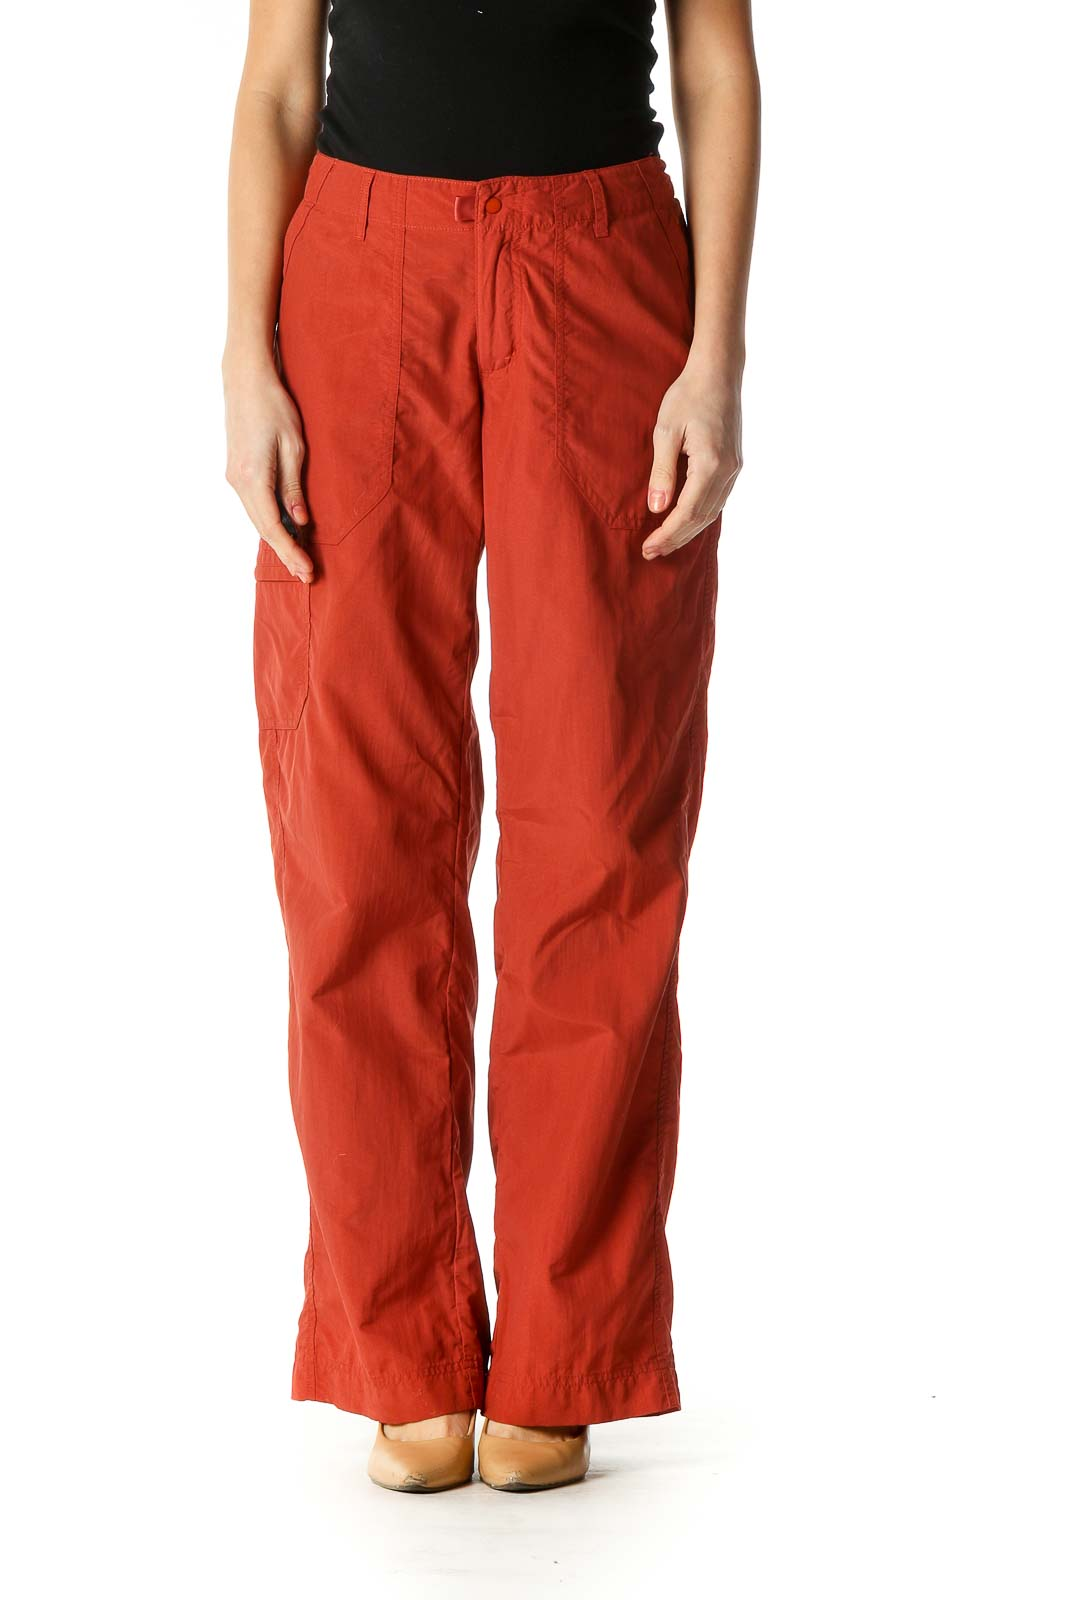 Orange Solid Casual Culottes Pants Front